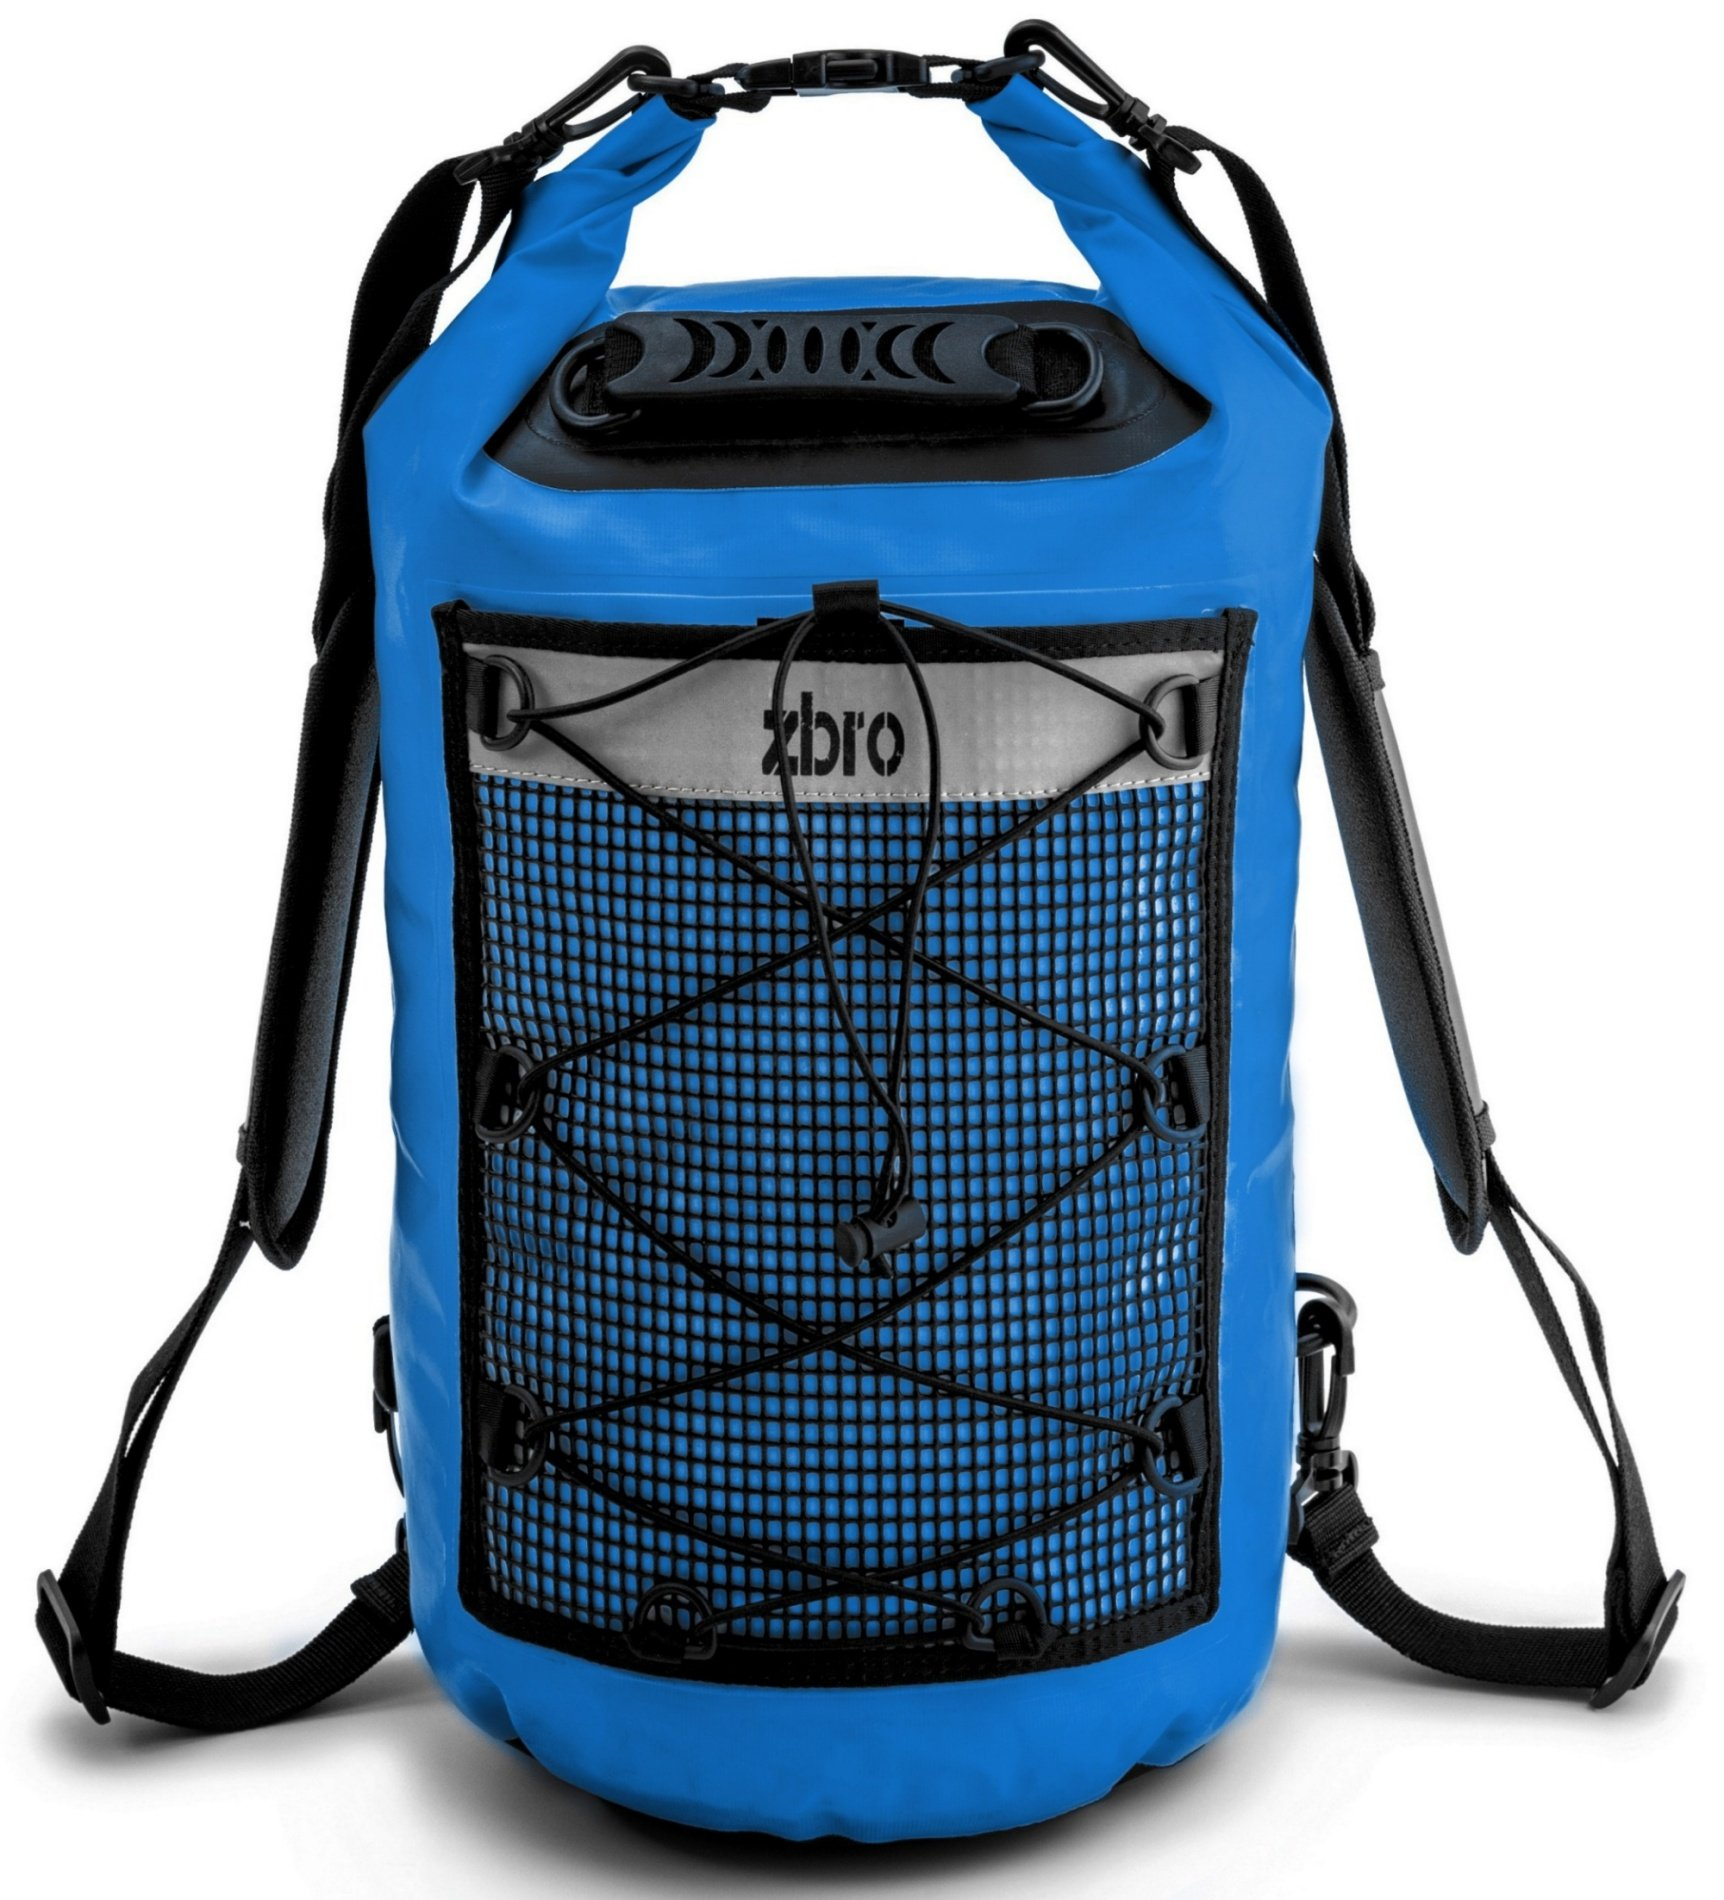 ZBRO Waterproof Sack Dry Bag for Kayaking Boating Fishing Diving Beach - Roll Top Drybag Sack with Padded Straps - Floating Backpack Water Proof Bags 20L 30L 40L - Great Gift for Kayakers by ZBRO